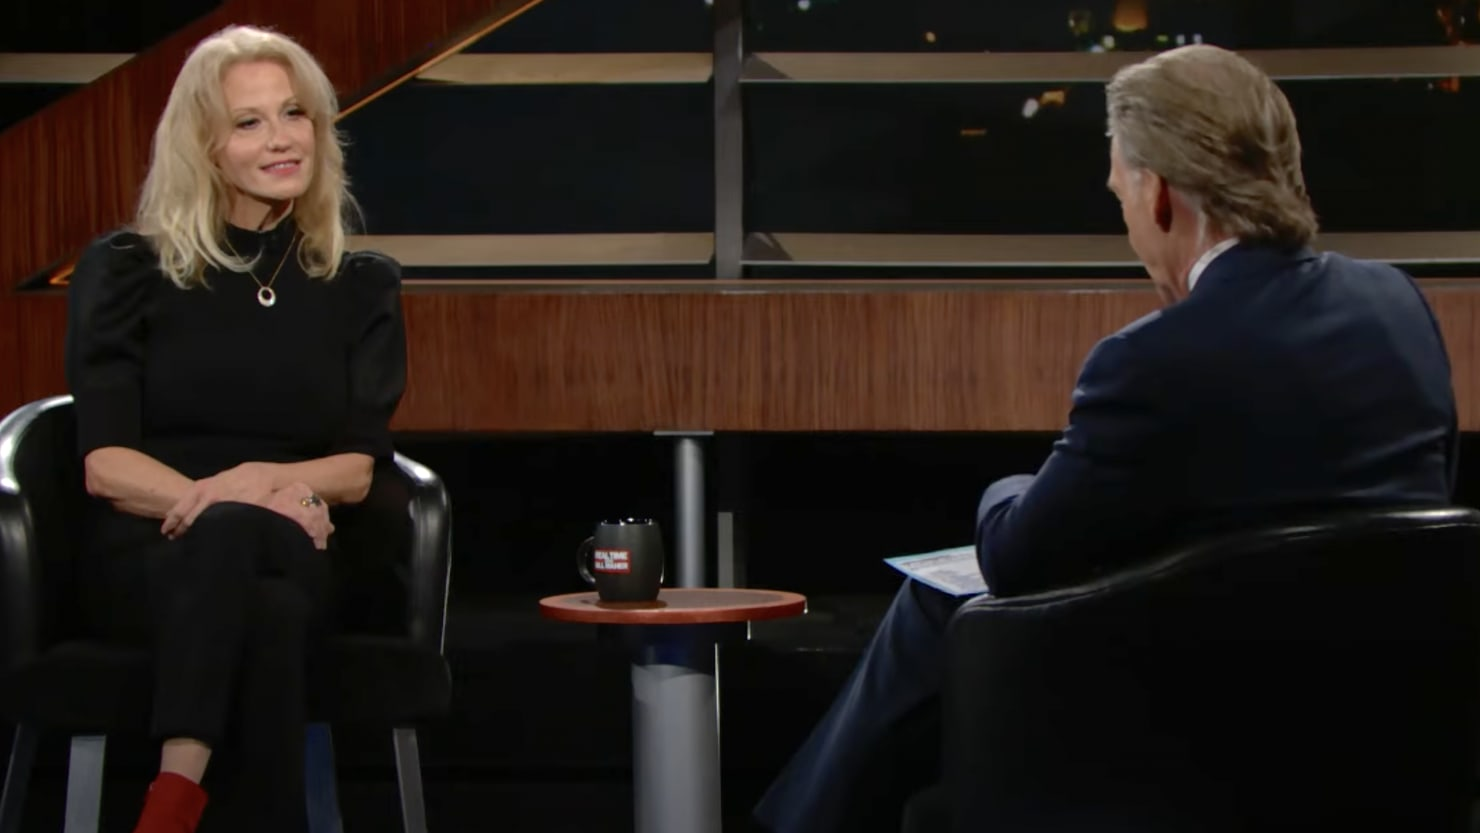 Bill Maher Delivers Final Insult to Kellyanne Conway